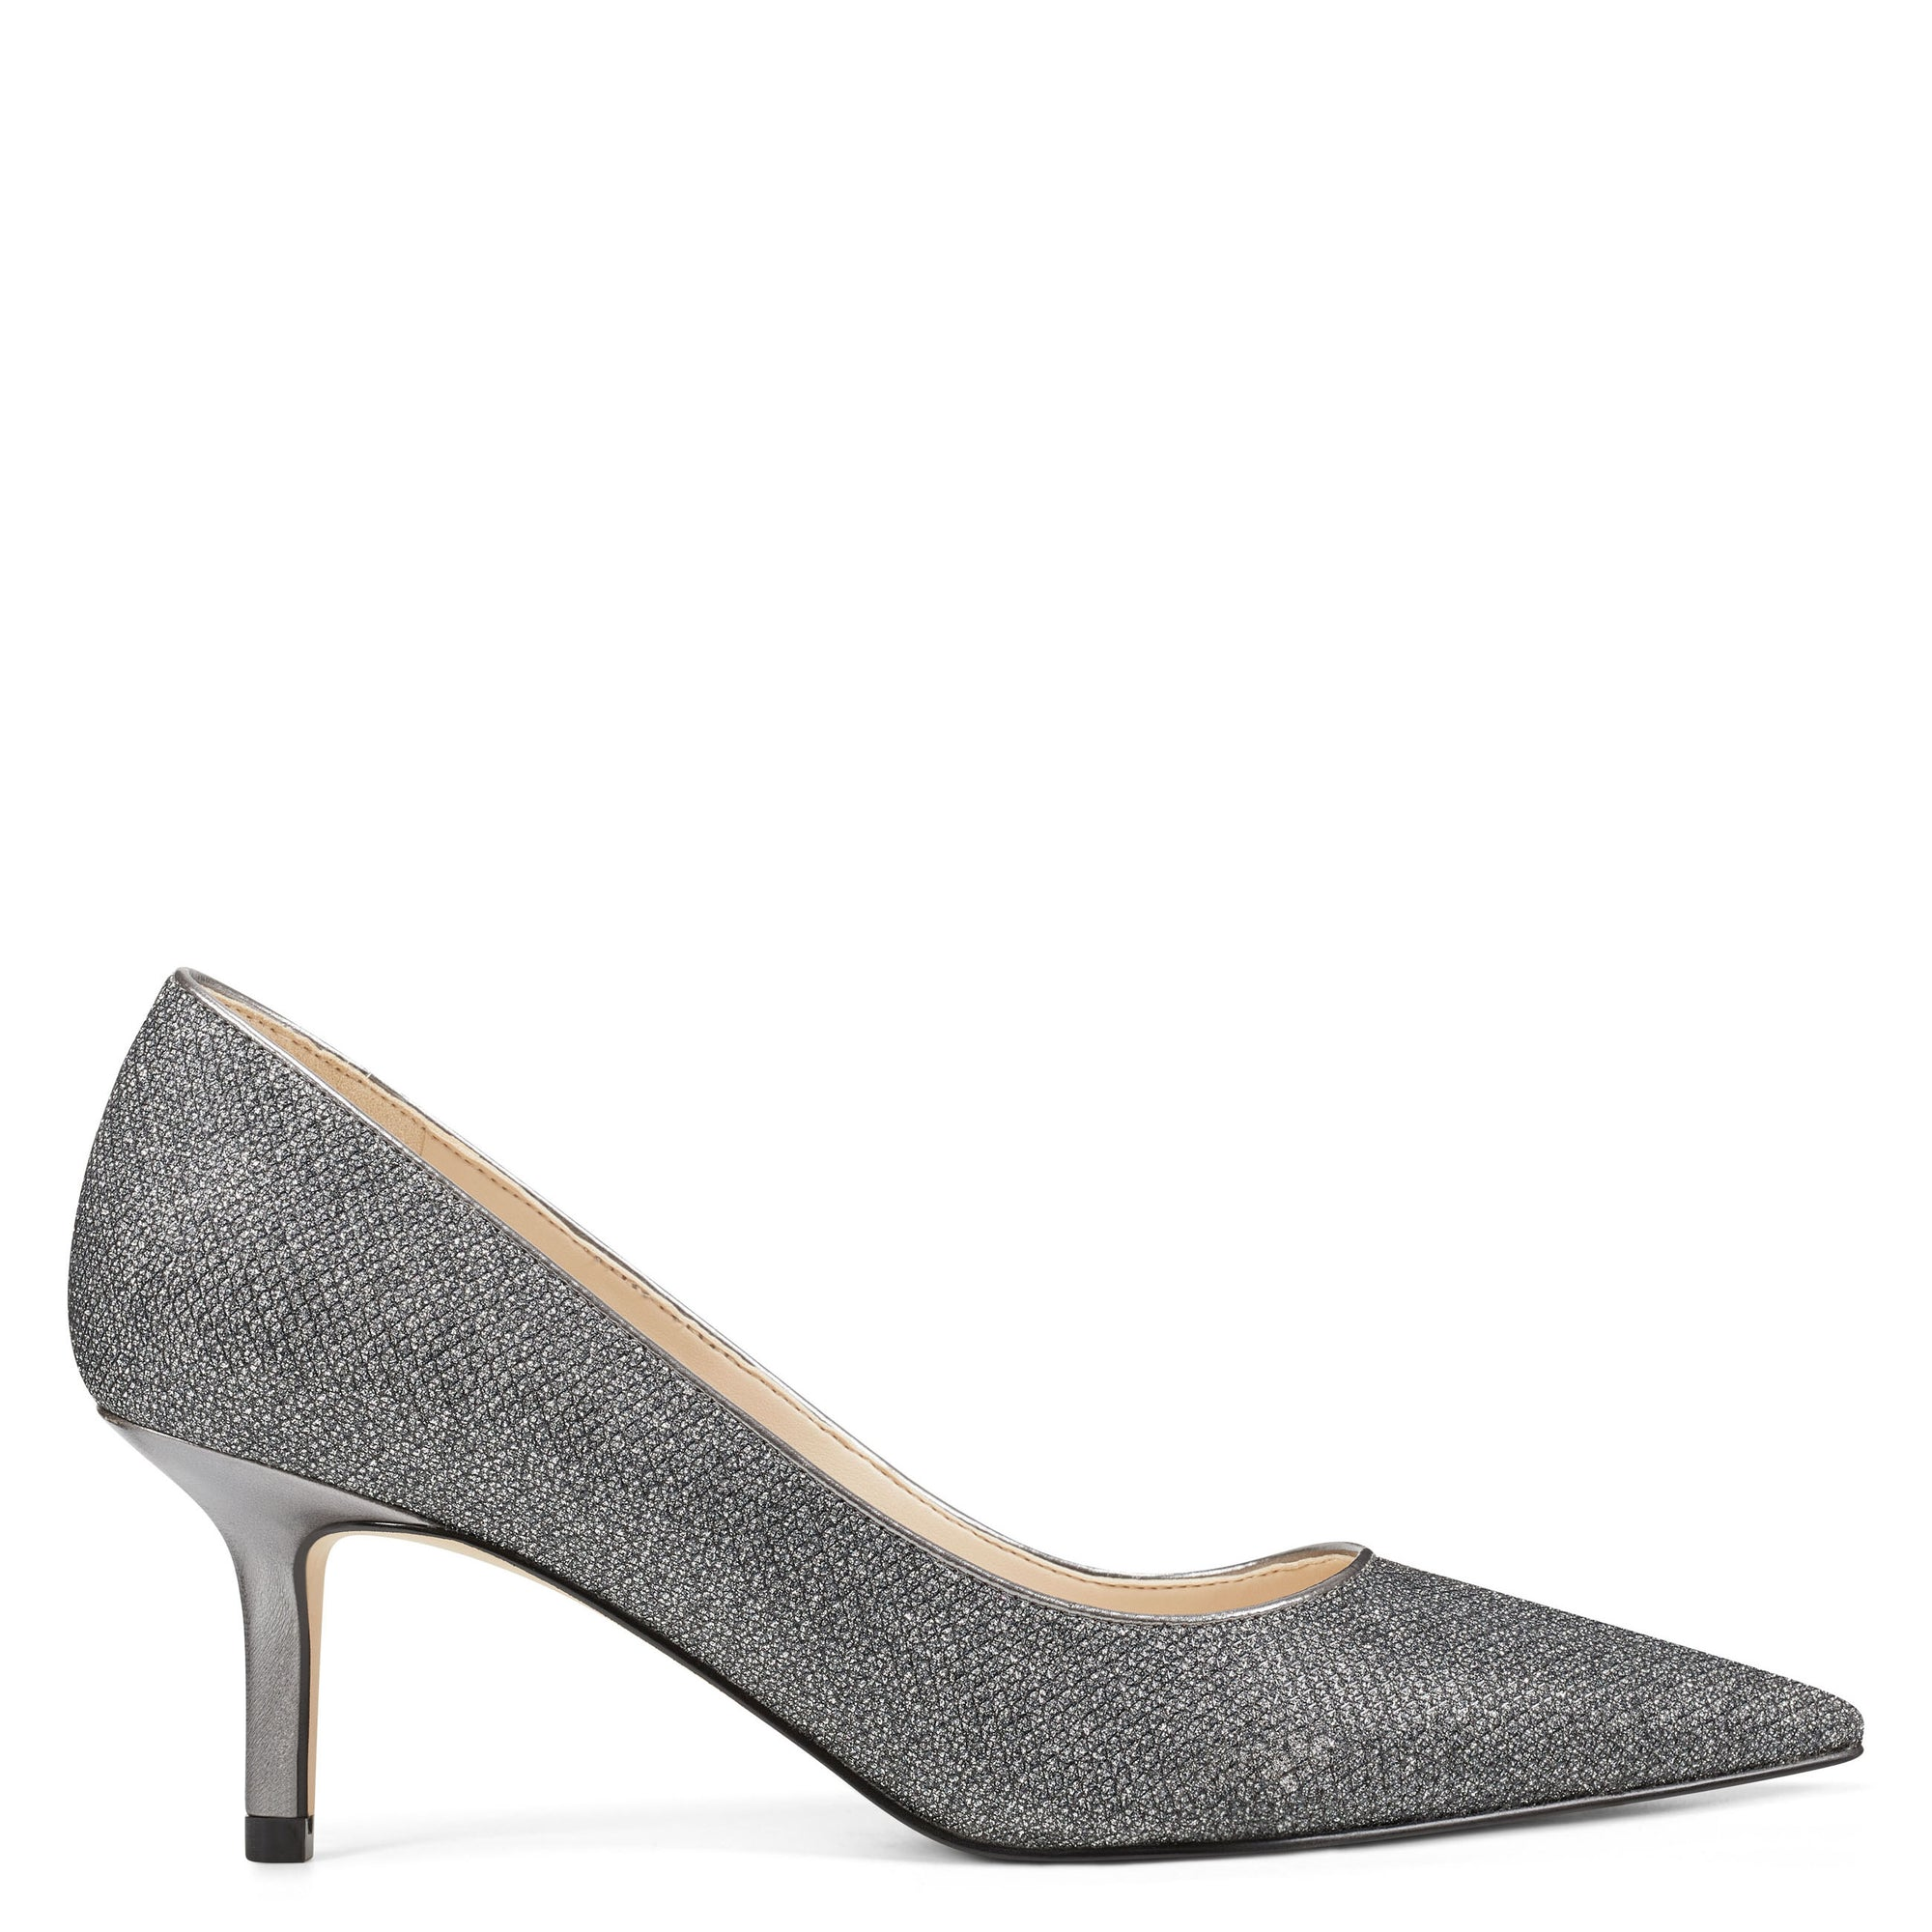 arlene-dress-pump-in-pewter-fabric